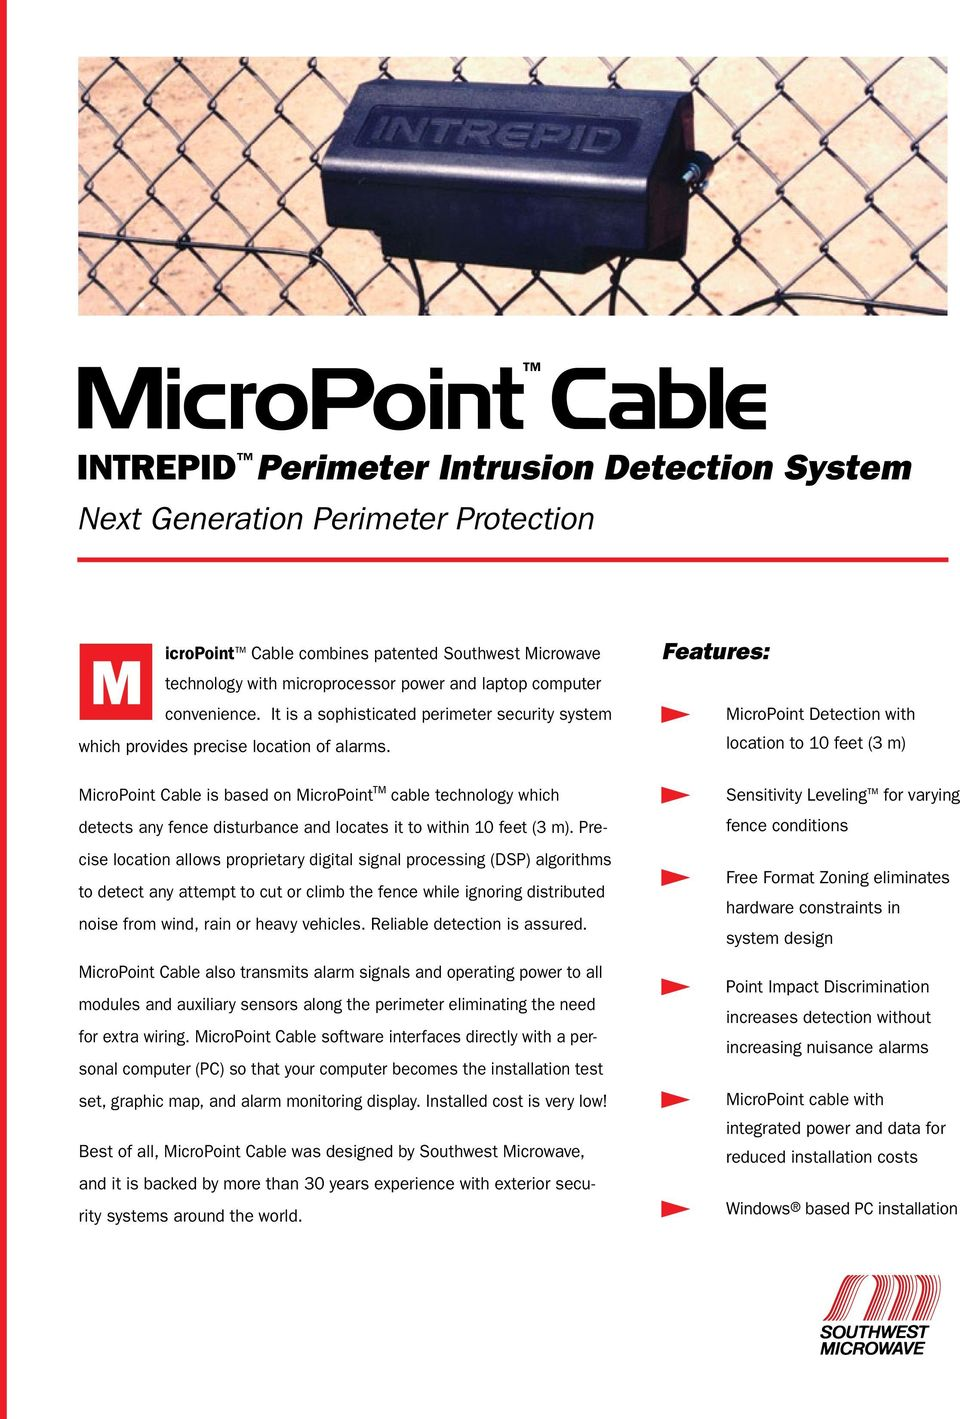 MicroPoint Cable is based on MicroPoint cable technology which detects any fence disturbance and locates it to within 10 feet (3 m).